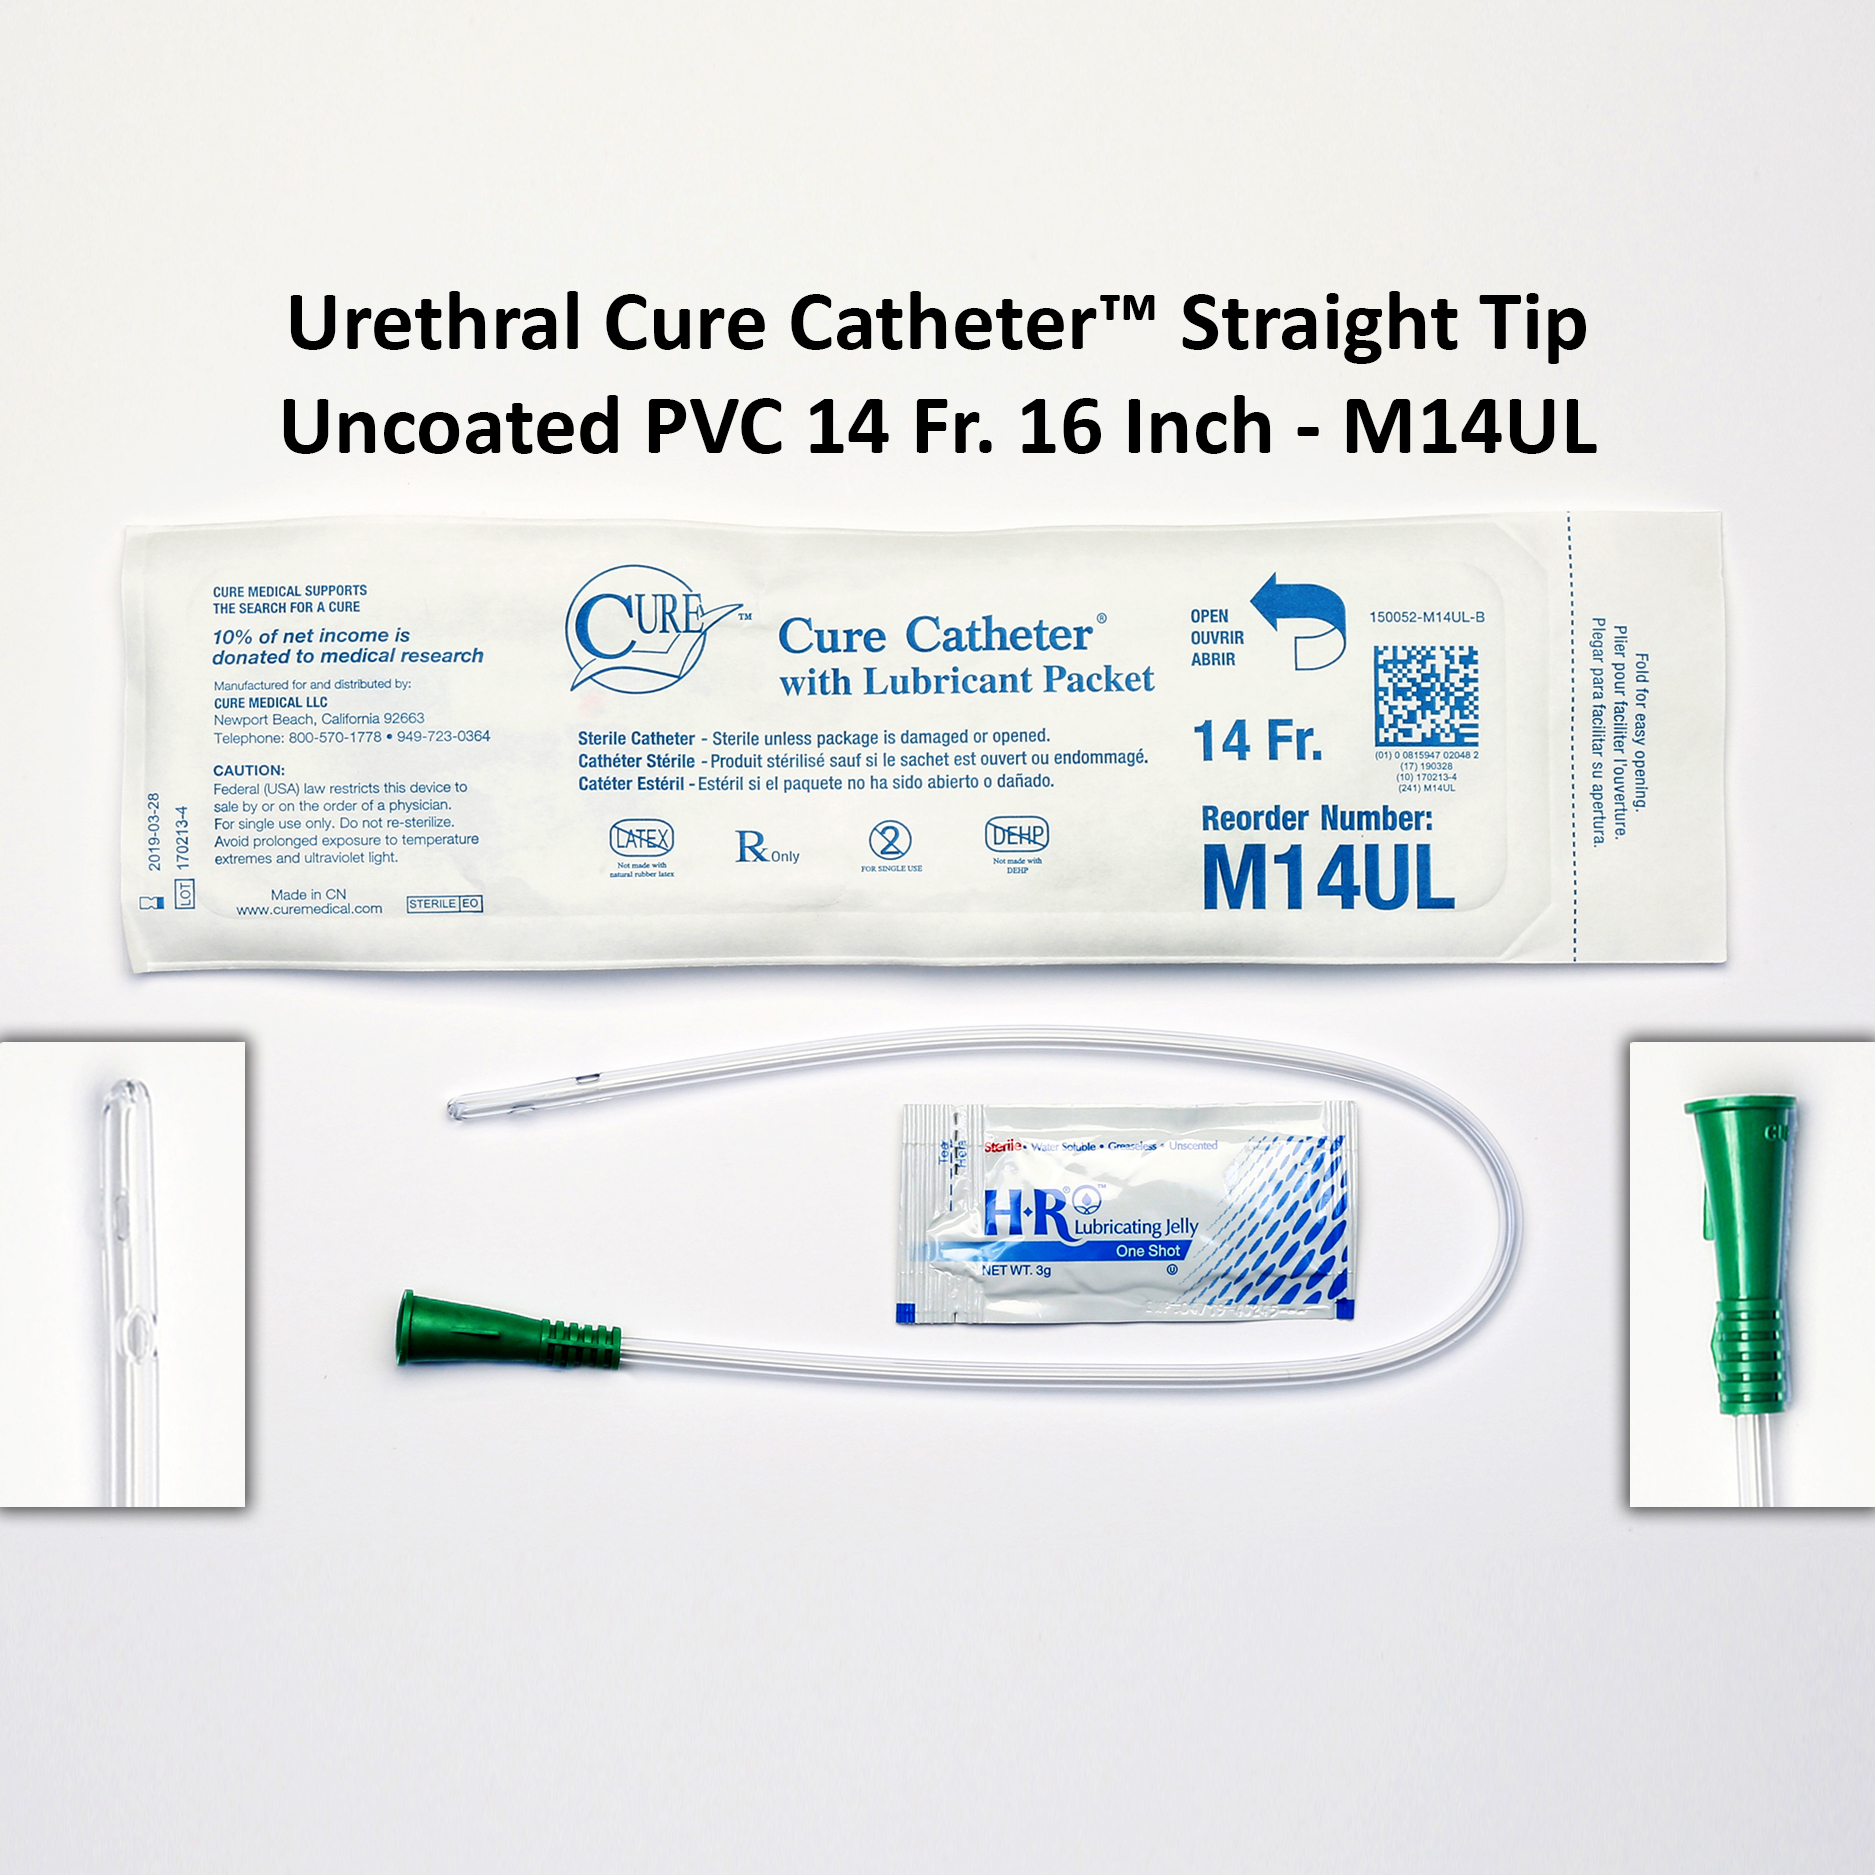 Urethral Cure Catheter™ Straight Tip Uncoated PVC 14 Fr. 16 Inch - M14UL